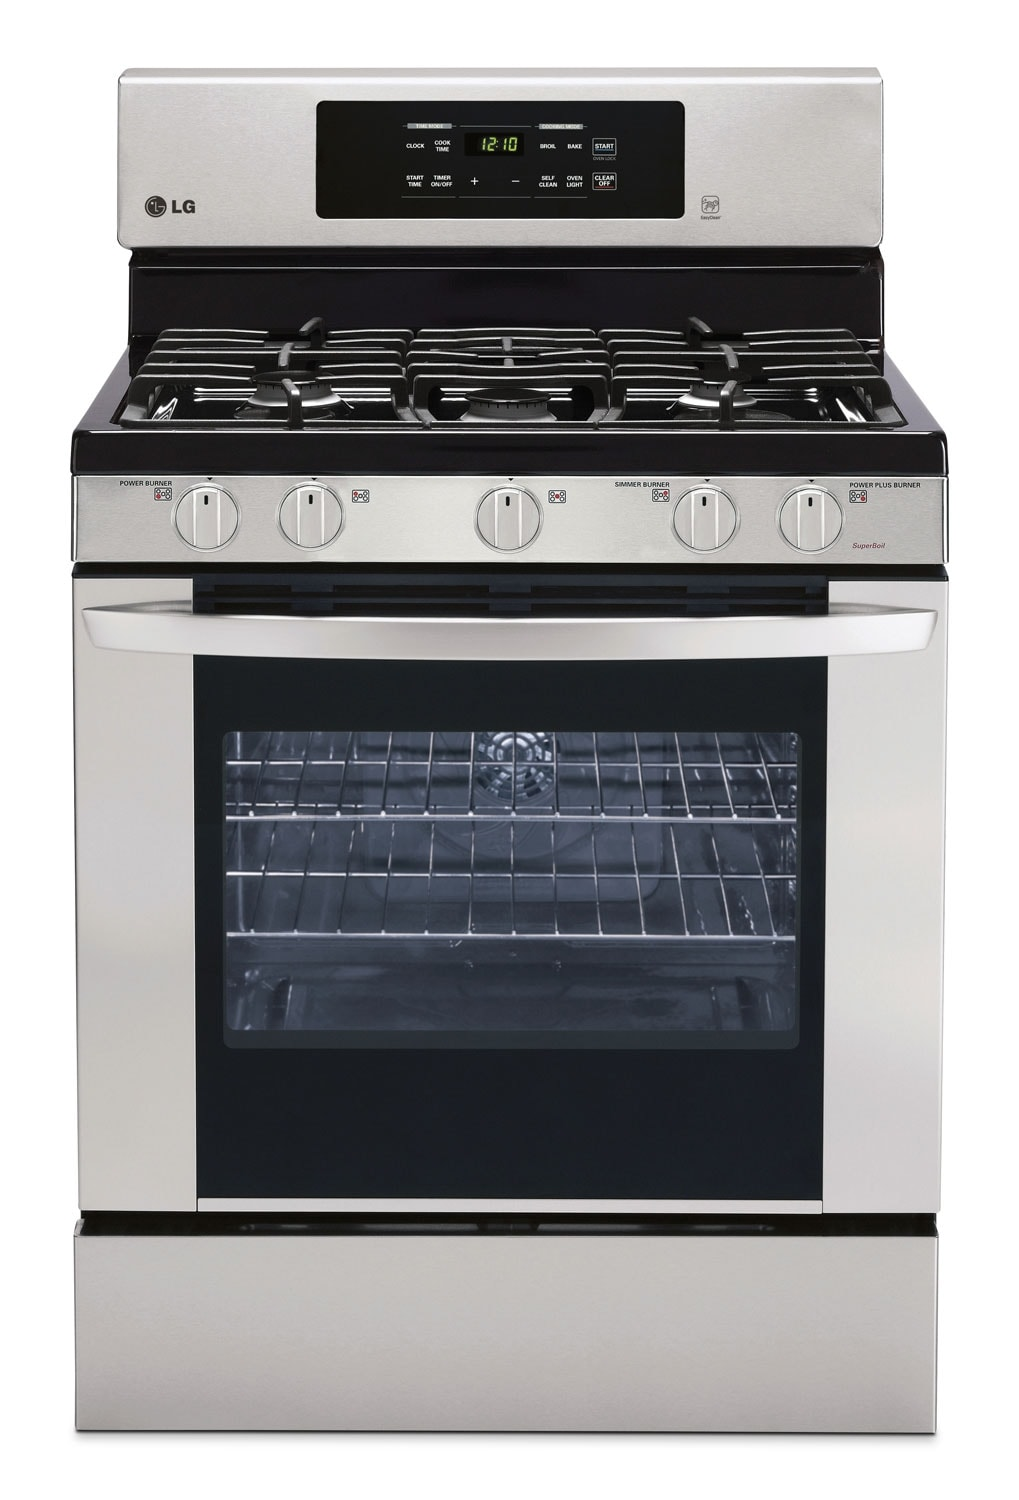 LG Stainless Steel Freestanding Gas Range (5.4 Cu.Ft) - LRG3081ST